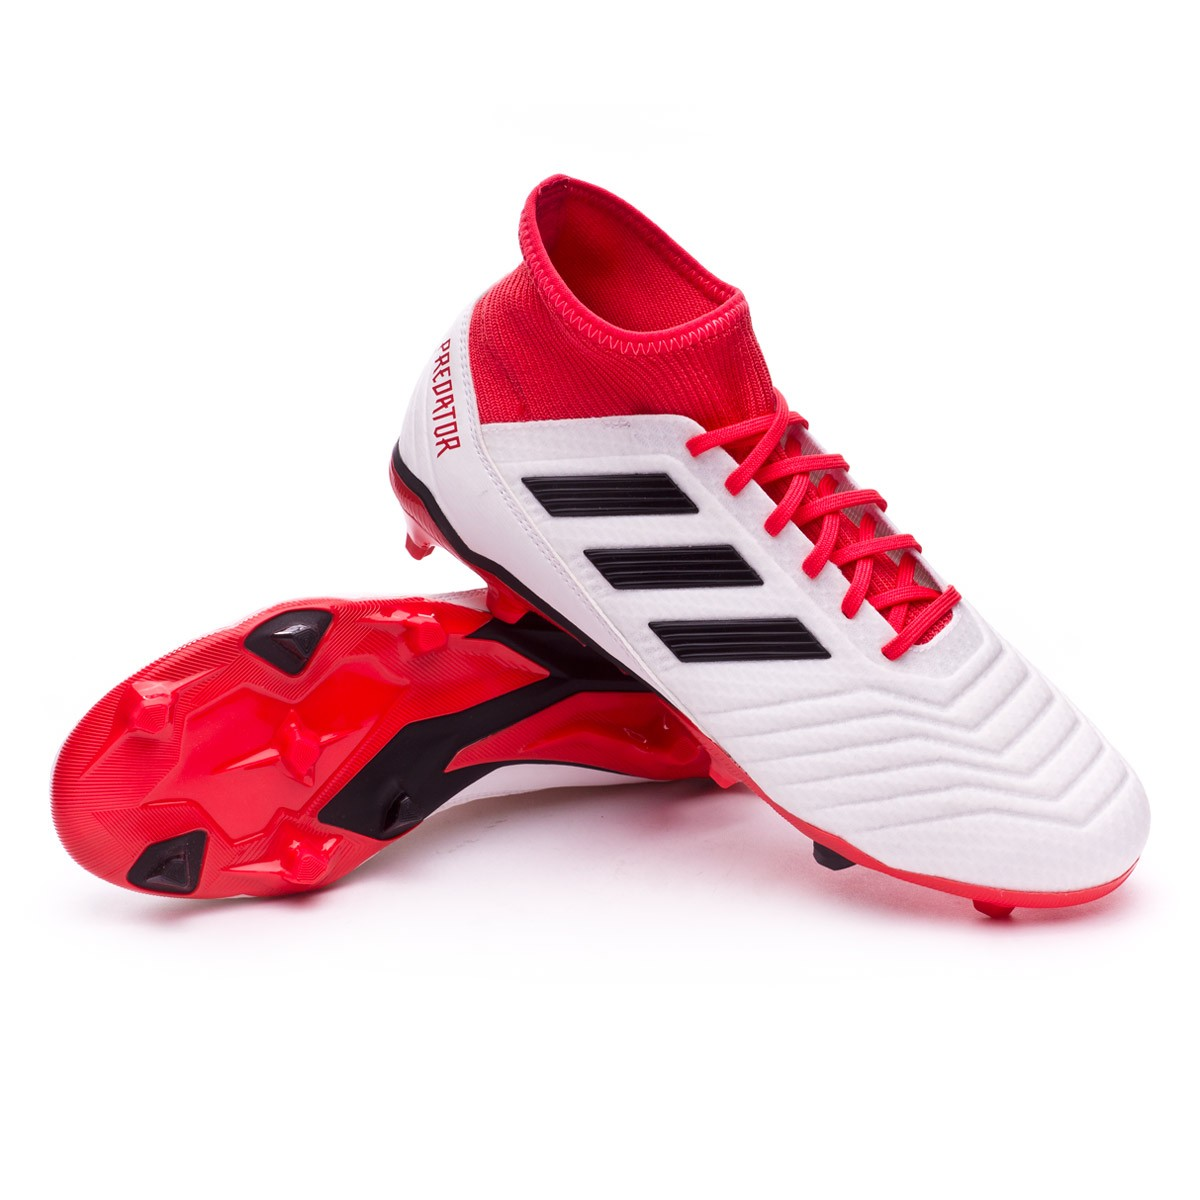 746392a0714ea Football Boots adidas Predator 18.3 FG White-Core black-Real coral ...